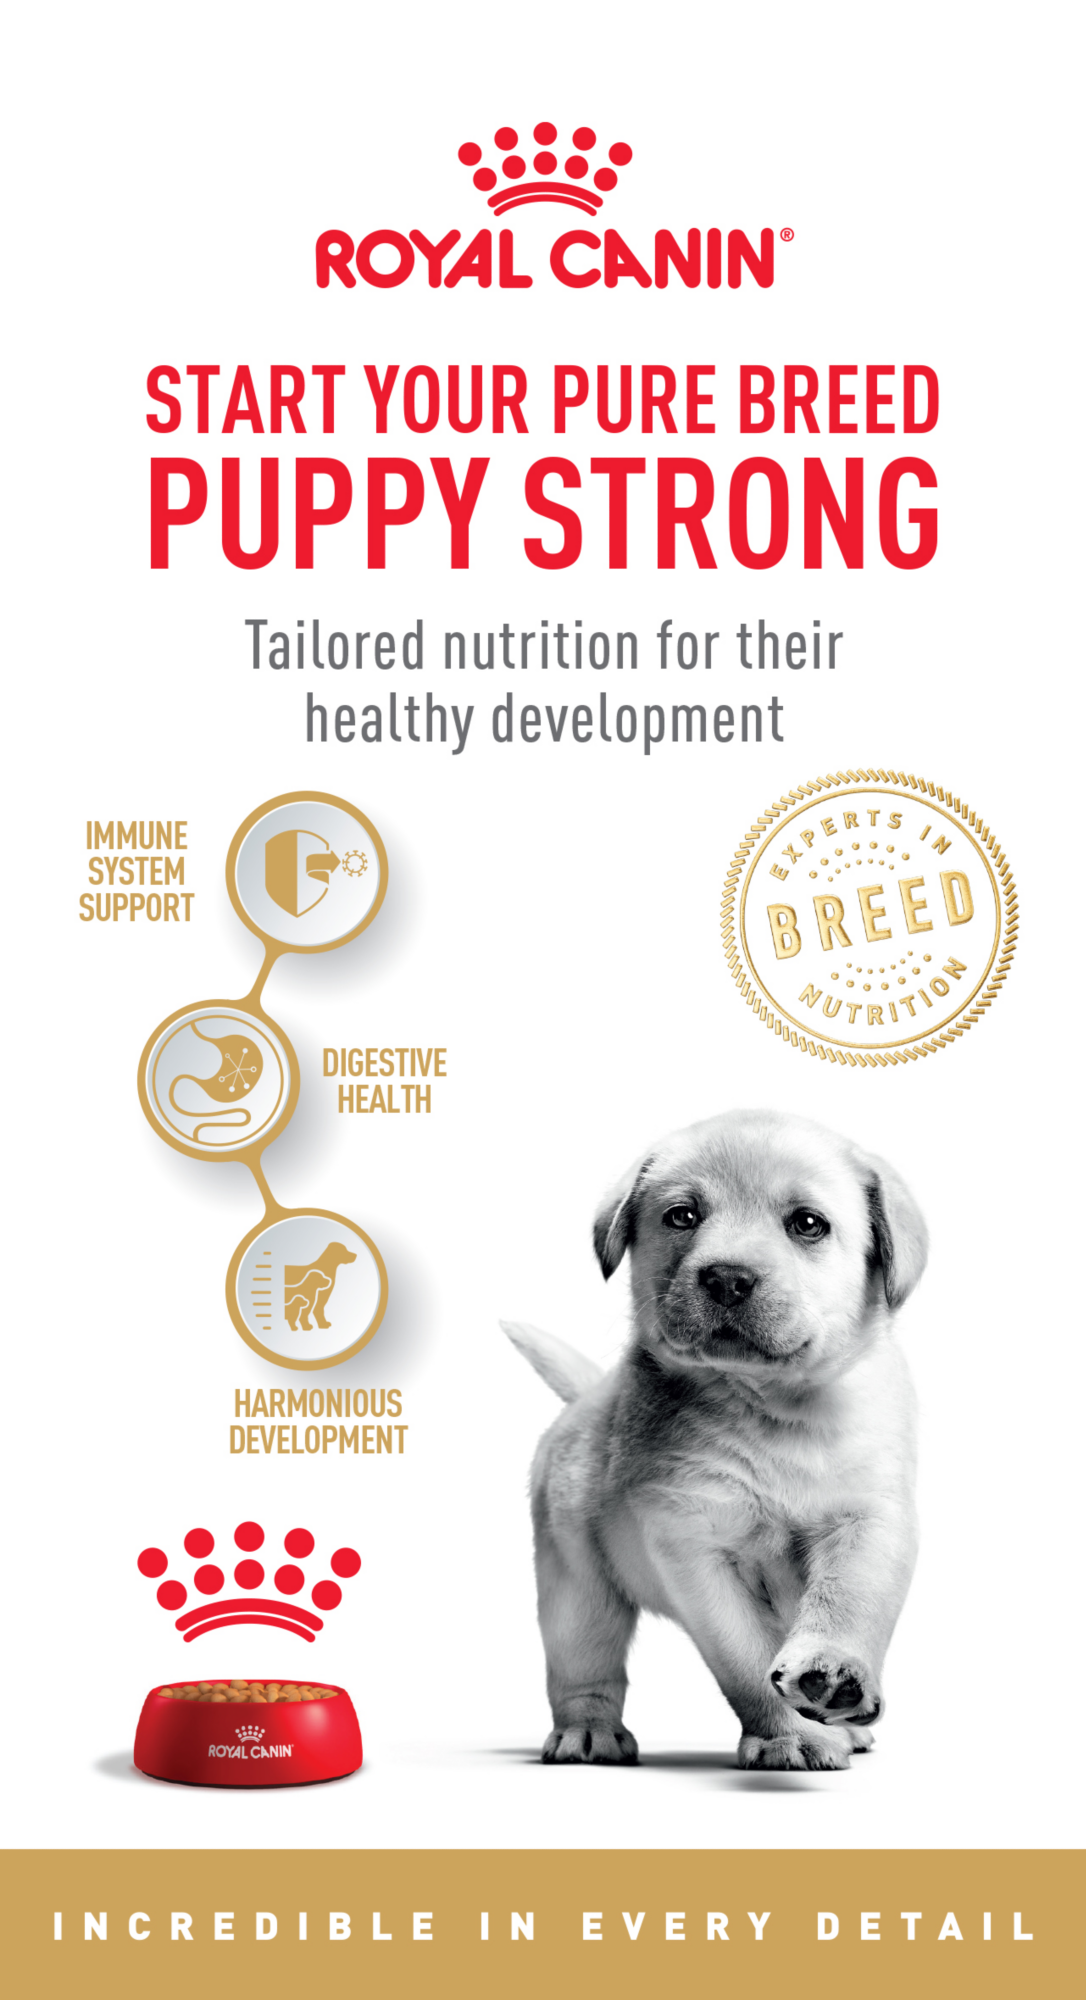 Royal Canin                             Start your pure breed puppy strong                             Tailored nutrition for their healthy development                             Immune System Support                             Digestive Health                             Harmonious Development                             Incredible in every detail